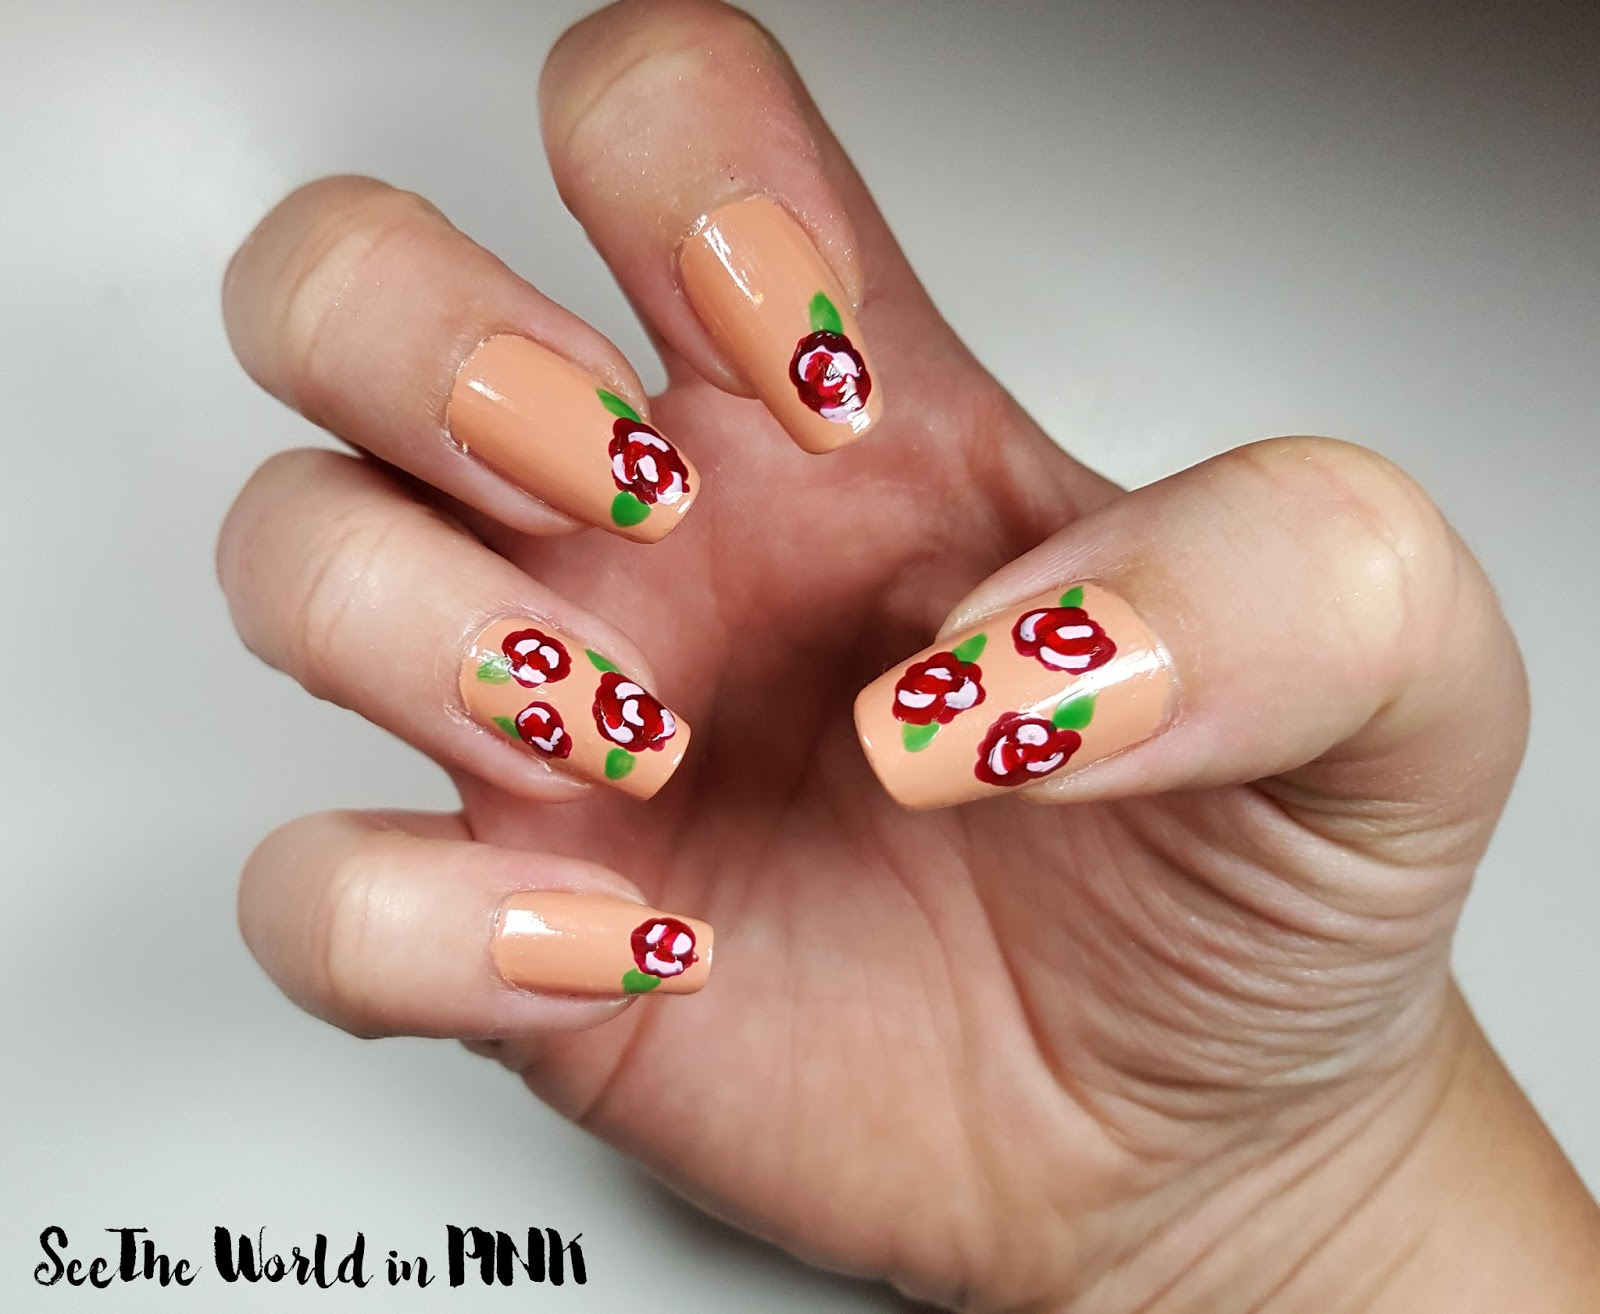 Manicure Monday - Red Rose Nail Art!